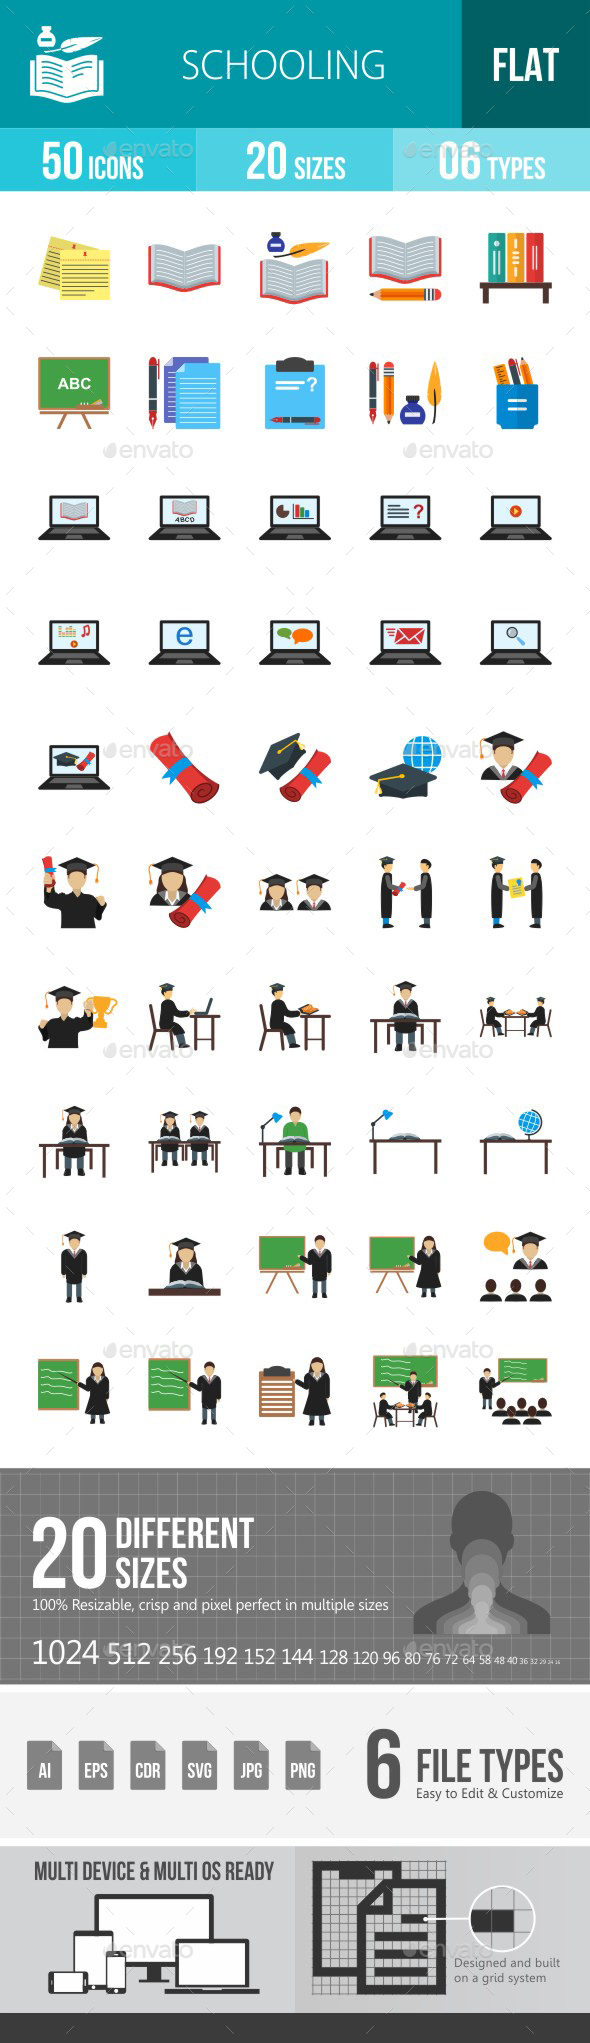 Schooling Flat Multicolor Icons - Icons